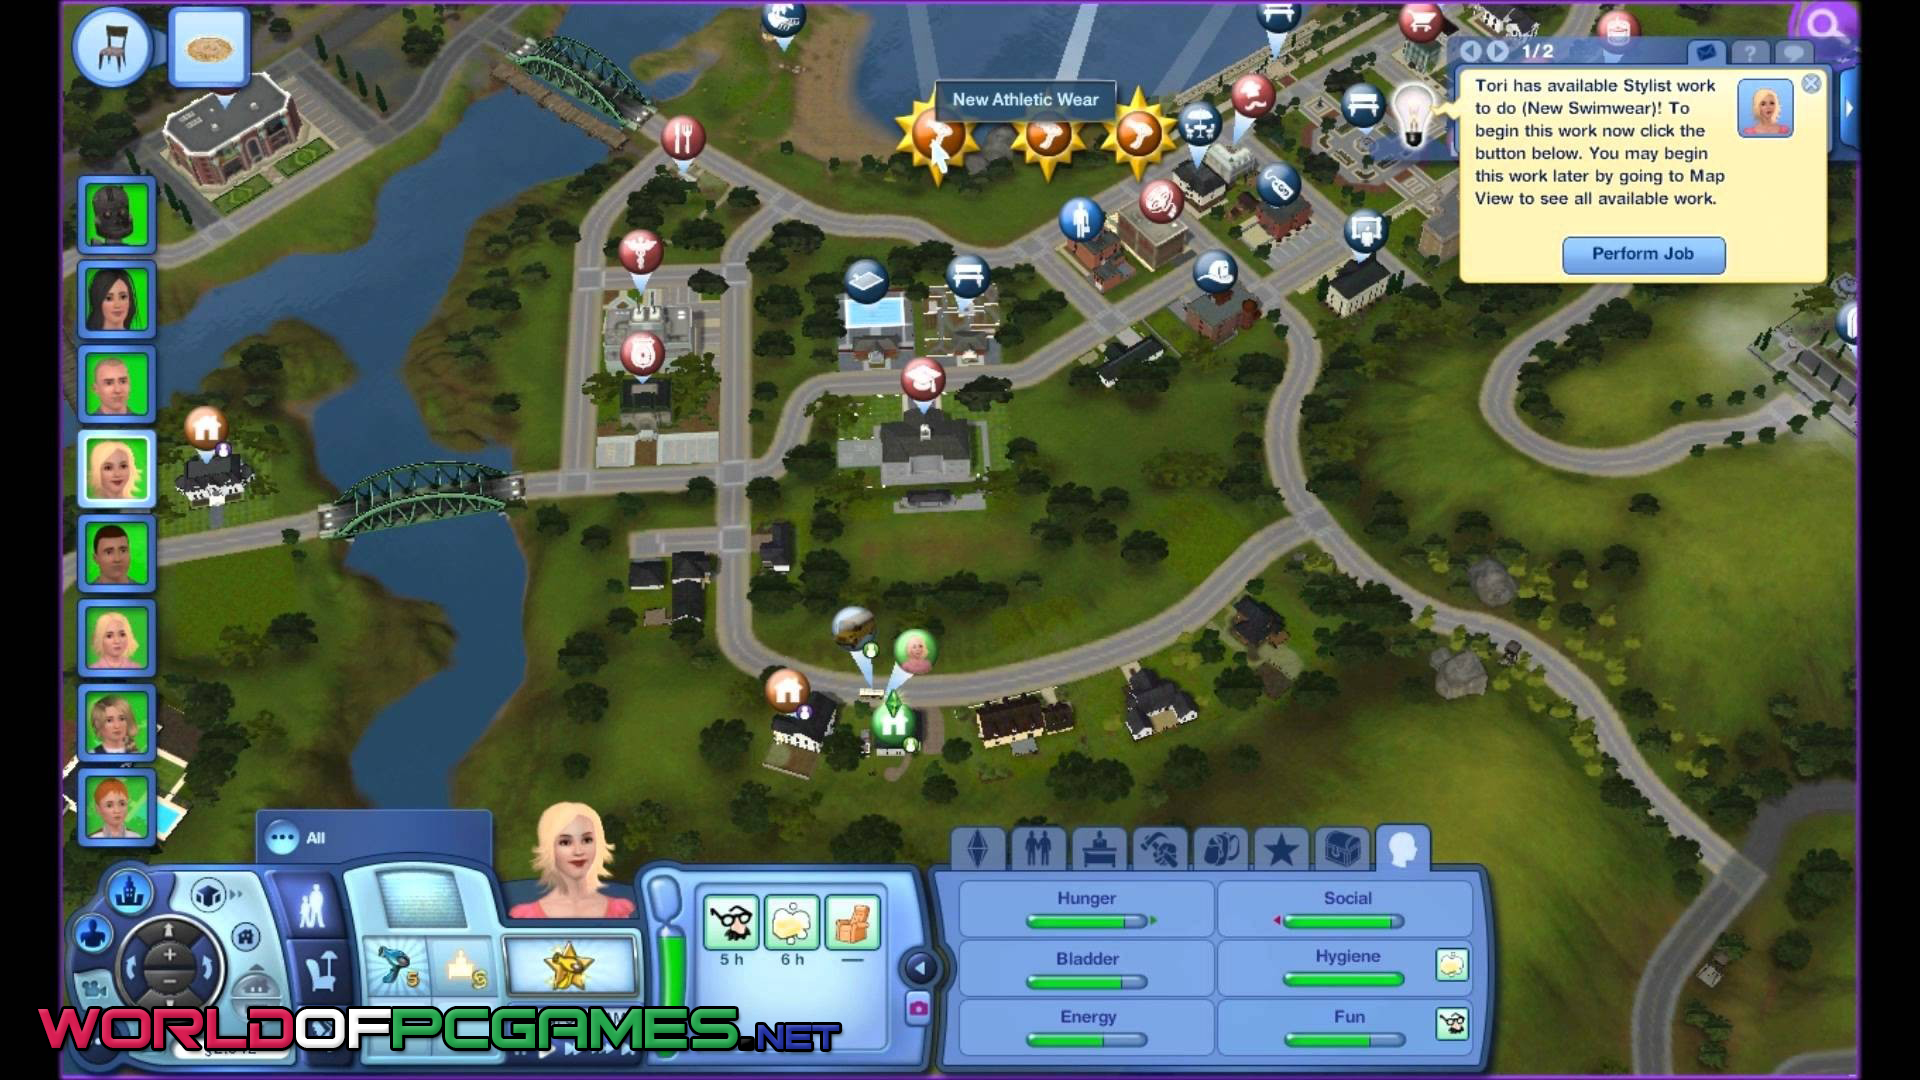 The Sims 3 Free Download PC Game By Worldofpcgames.com